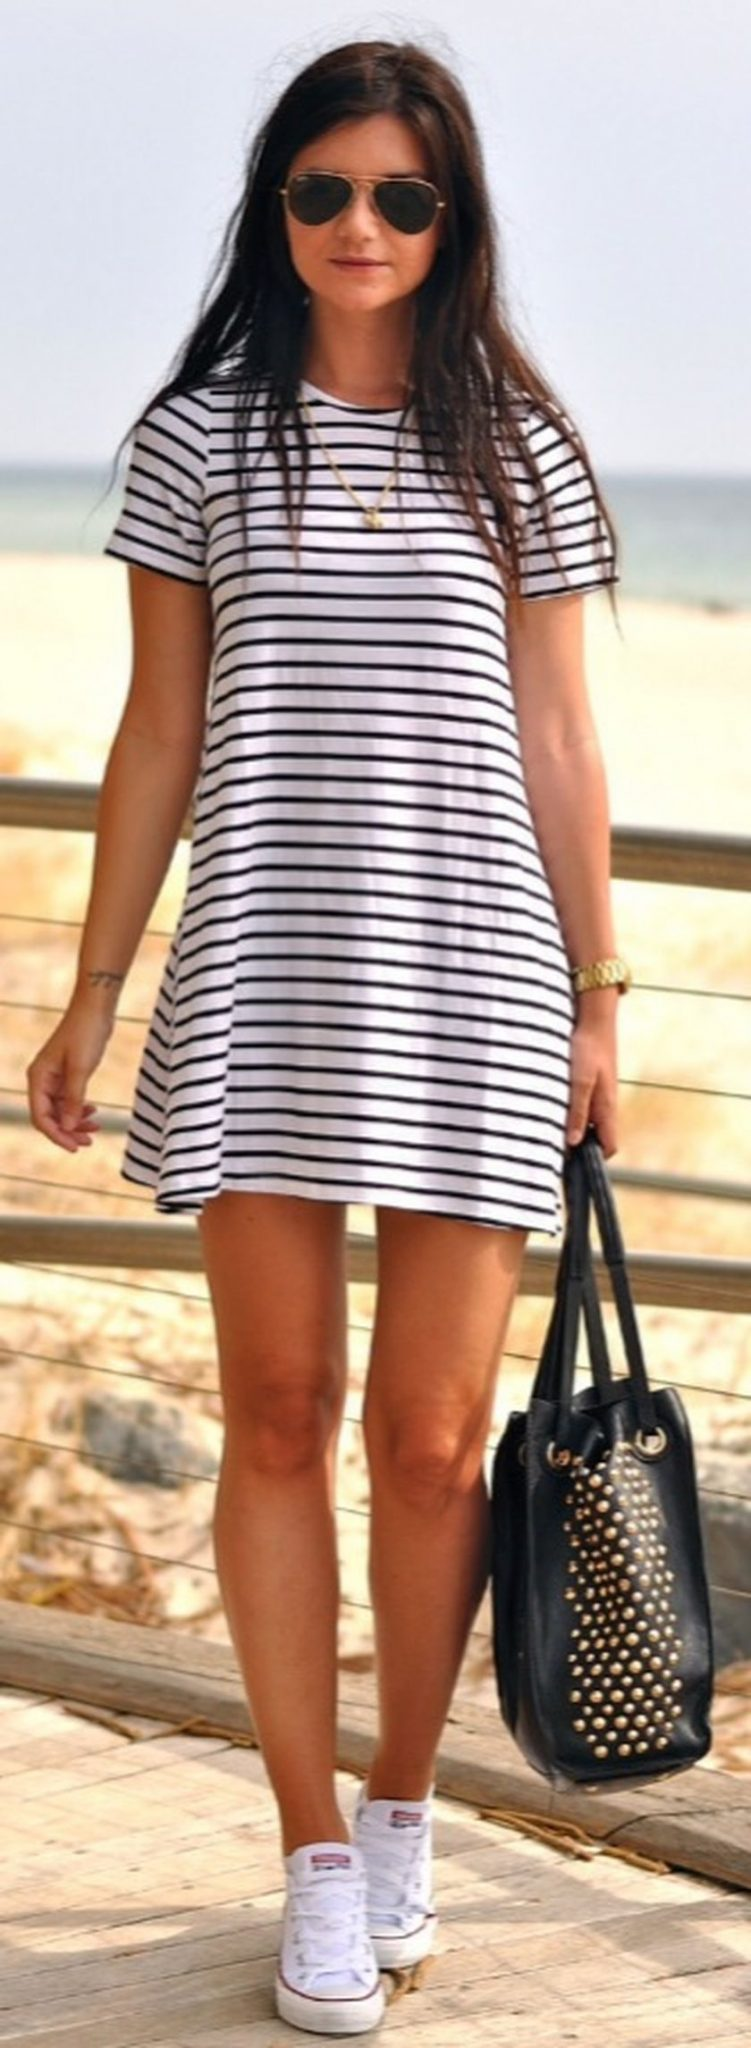 Casual black white striped midi dress outfit 4